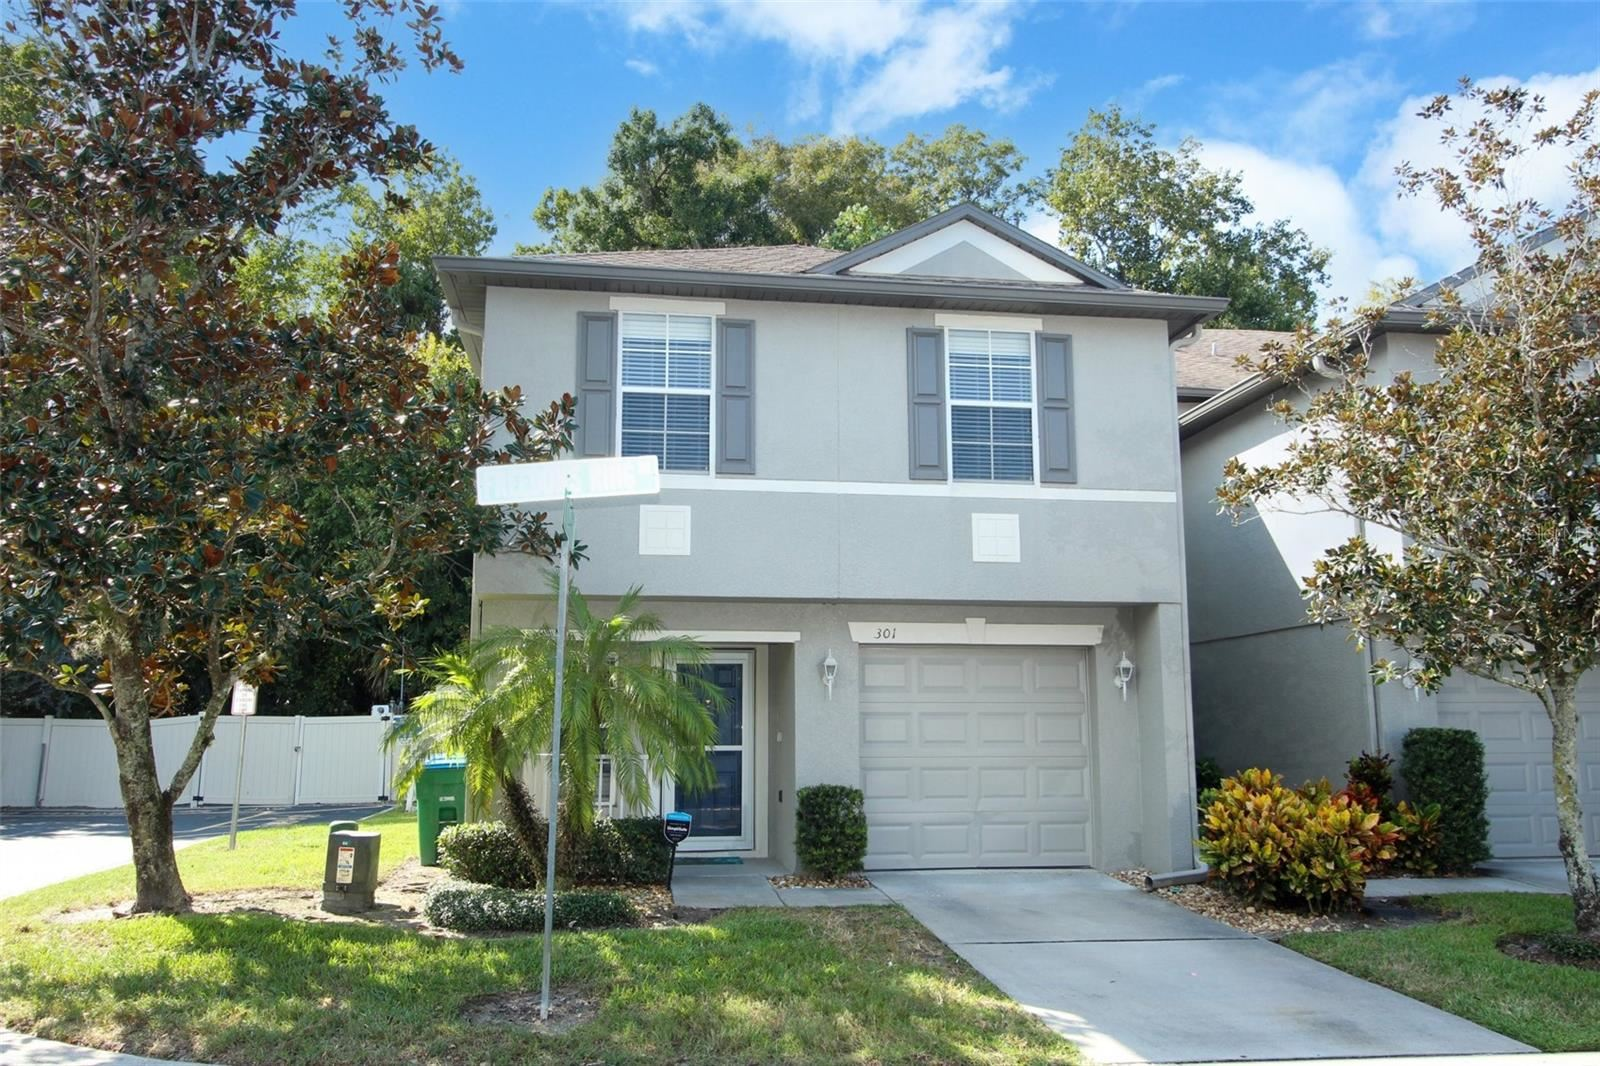 301 FREEDOM\'S RING DRIVE, Winter Springs, FL 32708 - #: O5980945